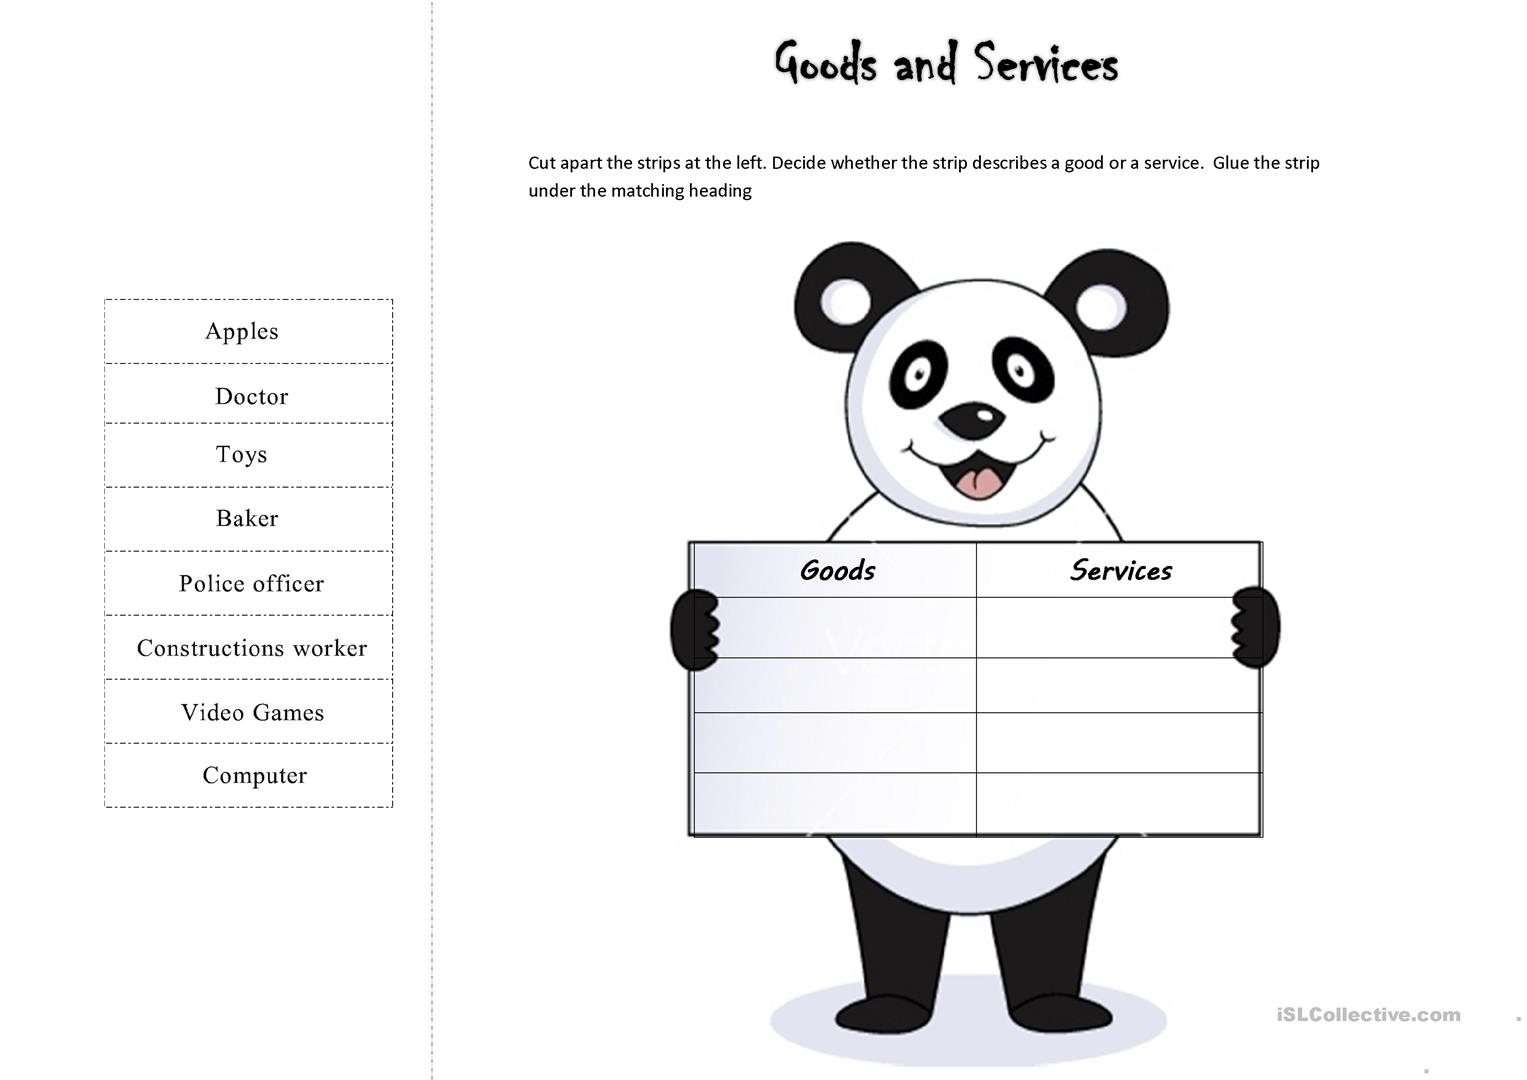 Worksheets Goods And Services Worksheets goods and services worksheet free esl printable worksheets made by full screen